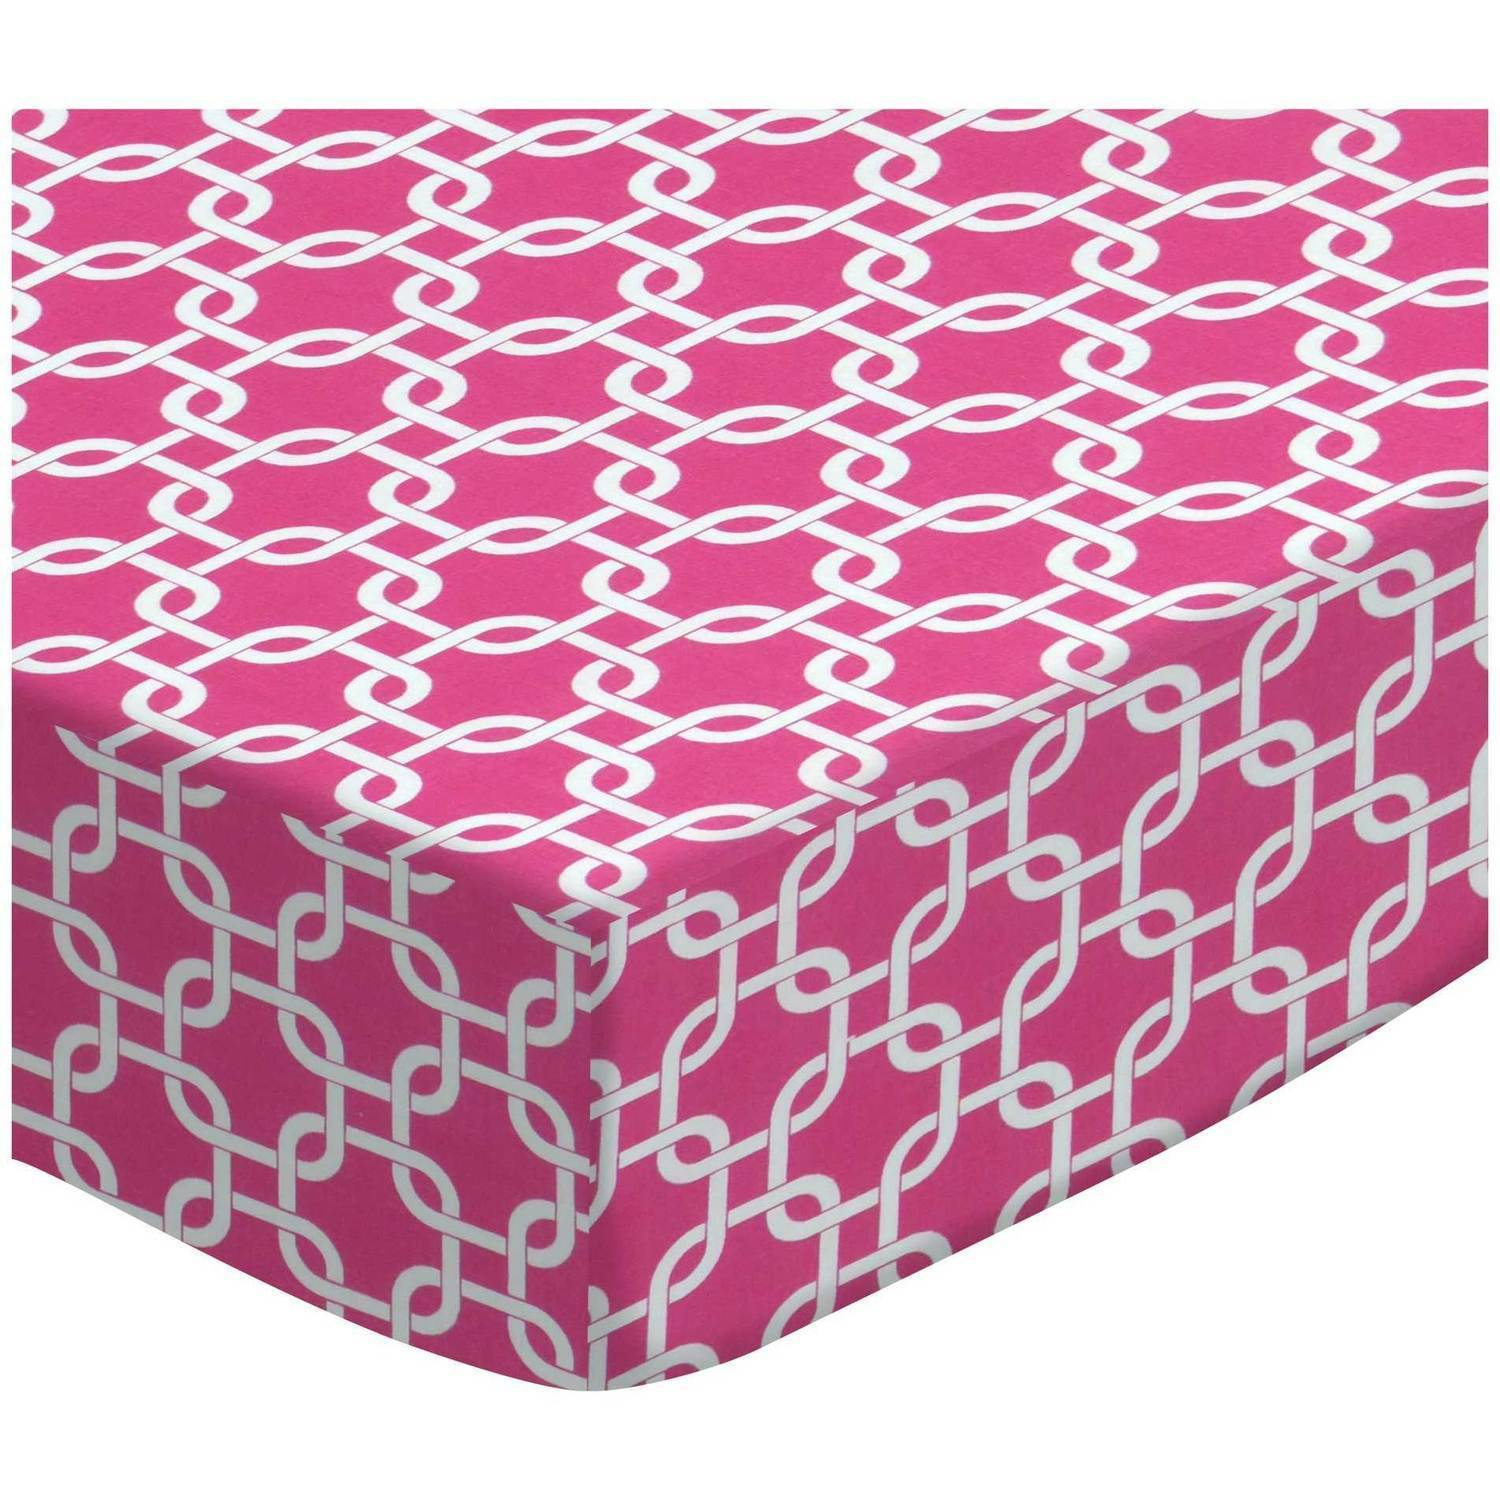 SheetWorld Fitted Pack N Play (Graco Square Playard) Sheet - Hot Pink Links